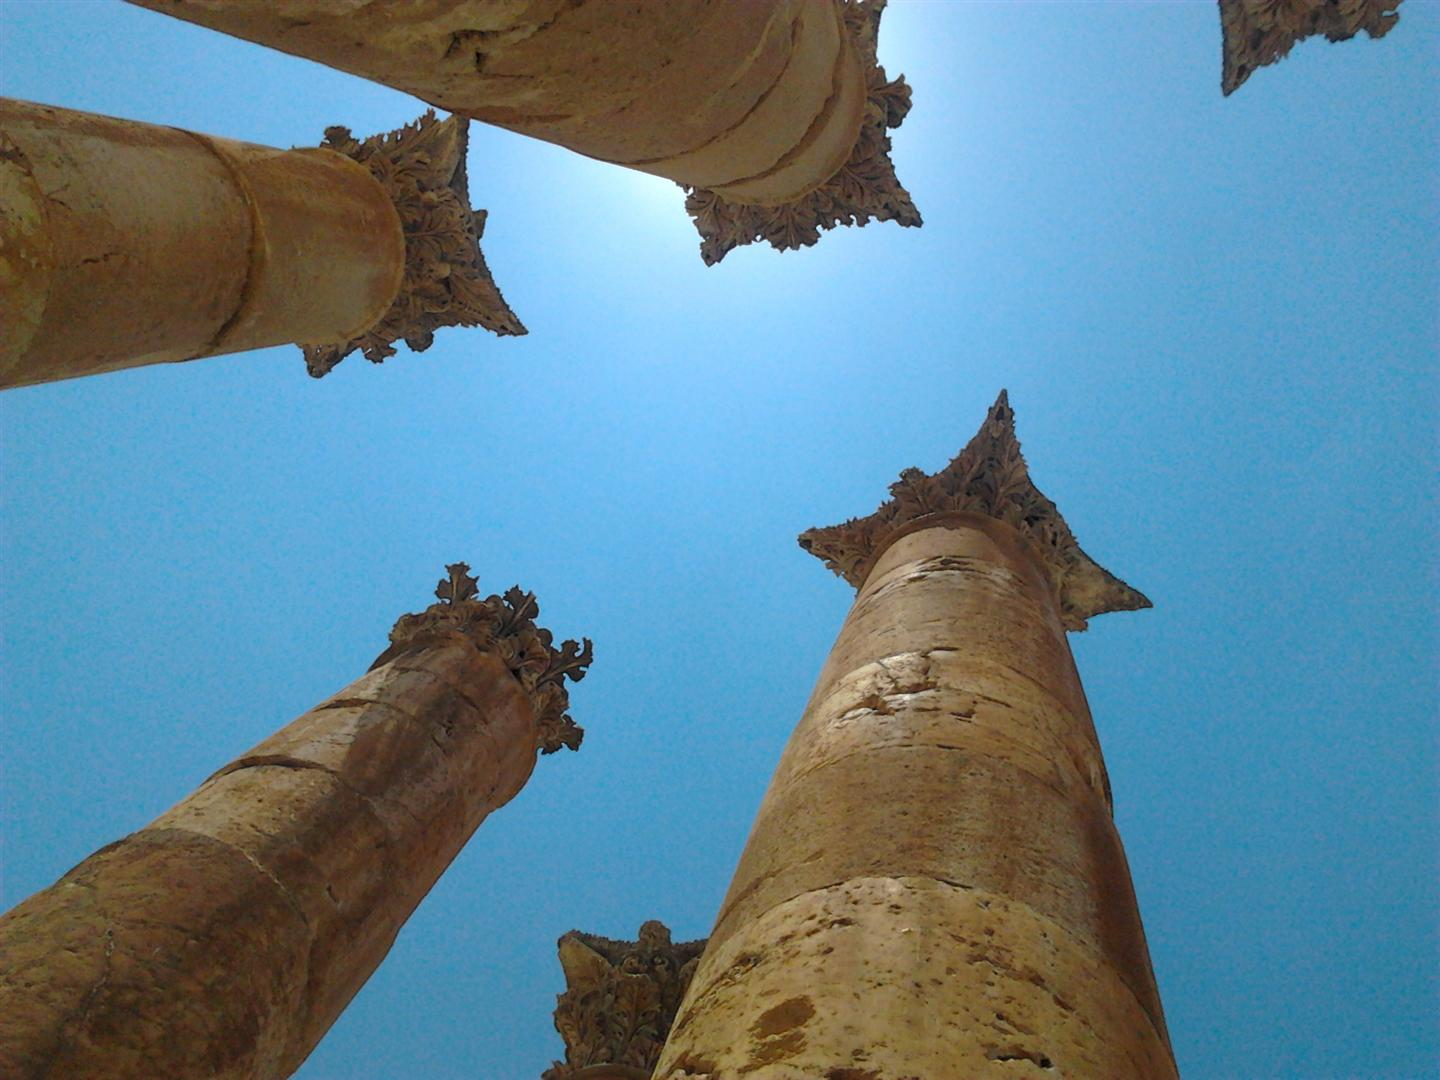 Temple of Artemis - Jerash